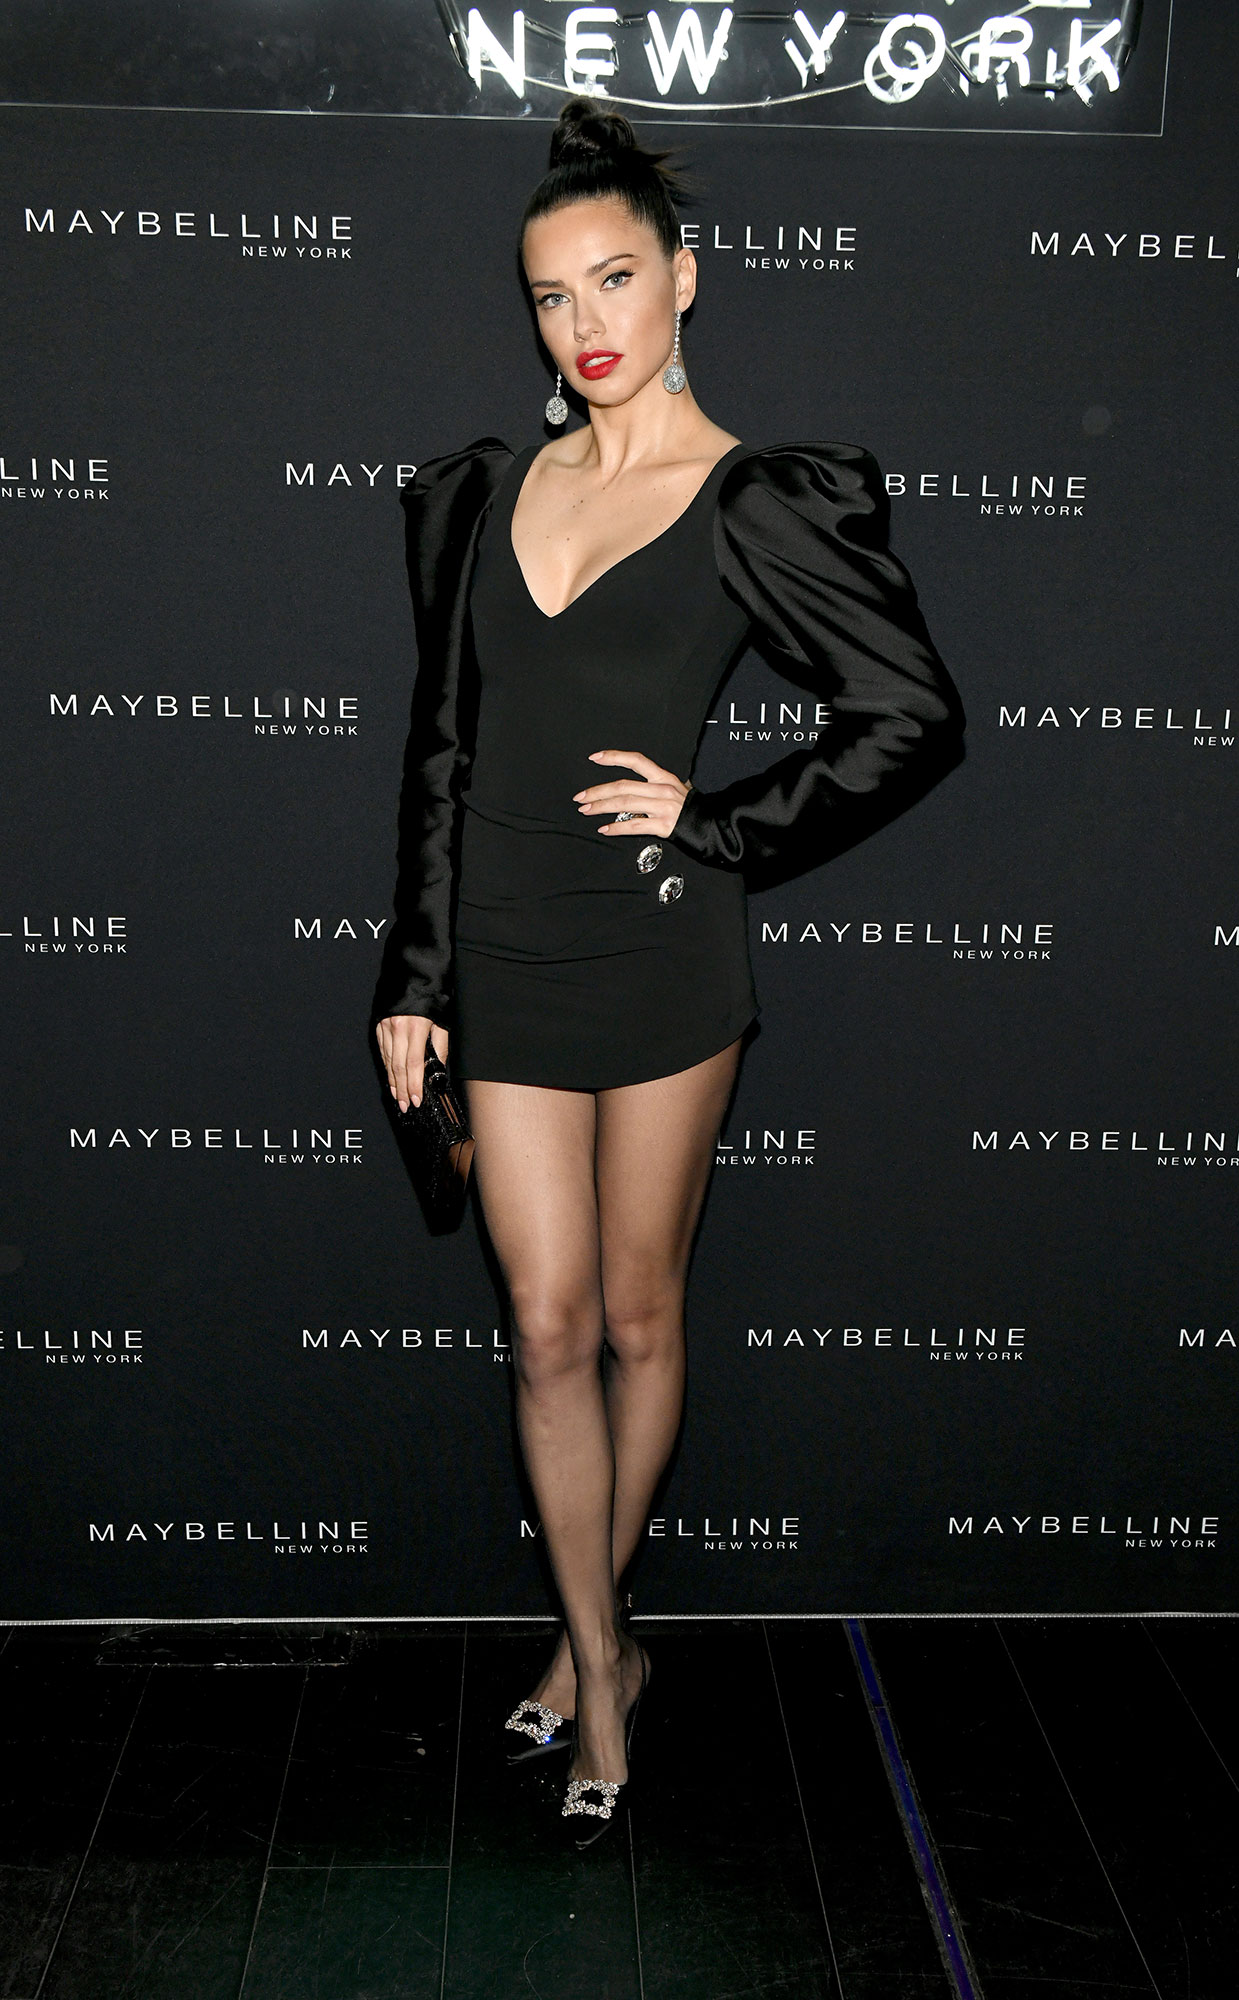 Adriana-Lima-Finds-Little-Makeup-Fingerprints-in-Her-Bathroom-for-the-Cutest-Reason-Instagram - Adriana Lima attends the Maybelline New York Fashion Week Party on February 10, 2019 in New York City.